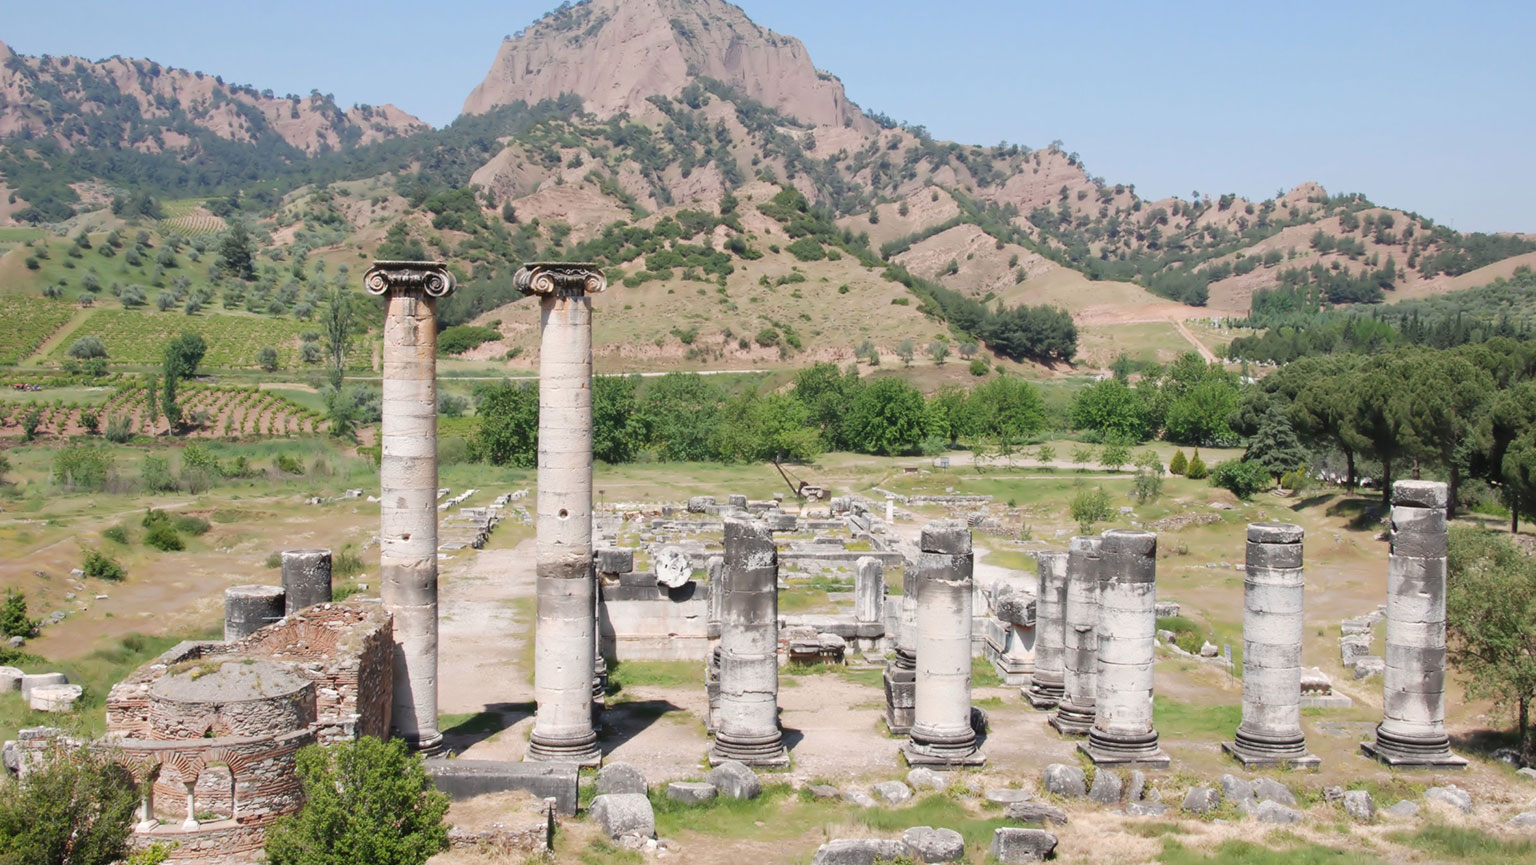 Royal Cities of Asia—Pergamon and Sardis